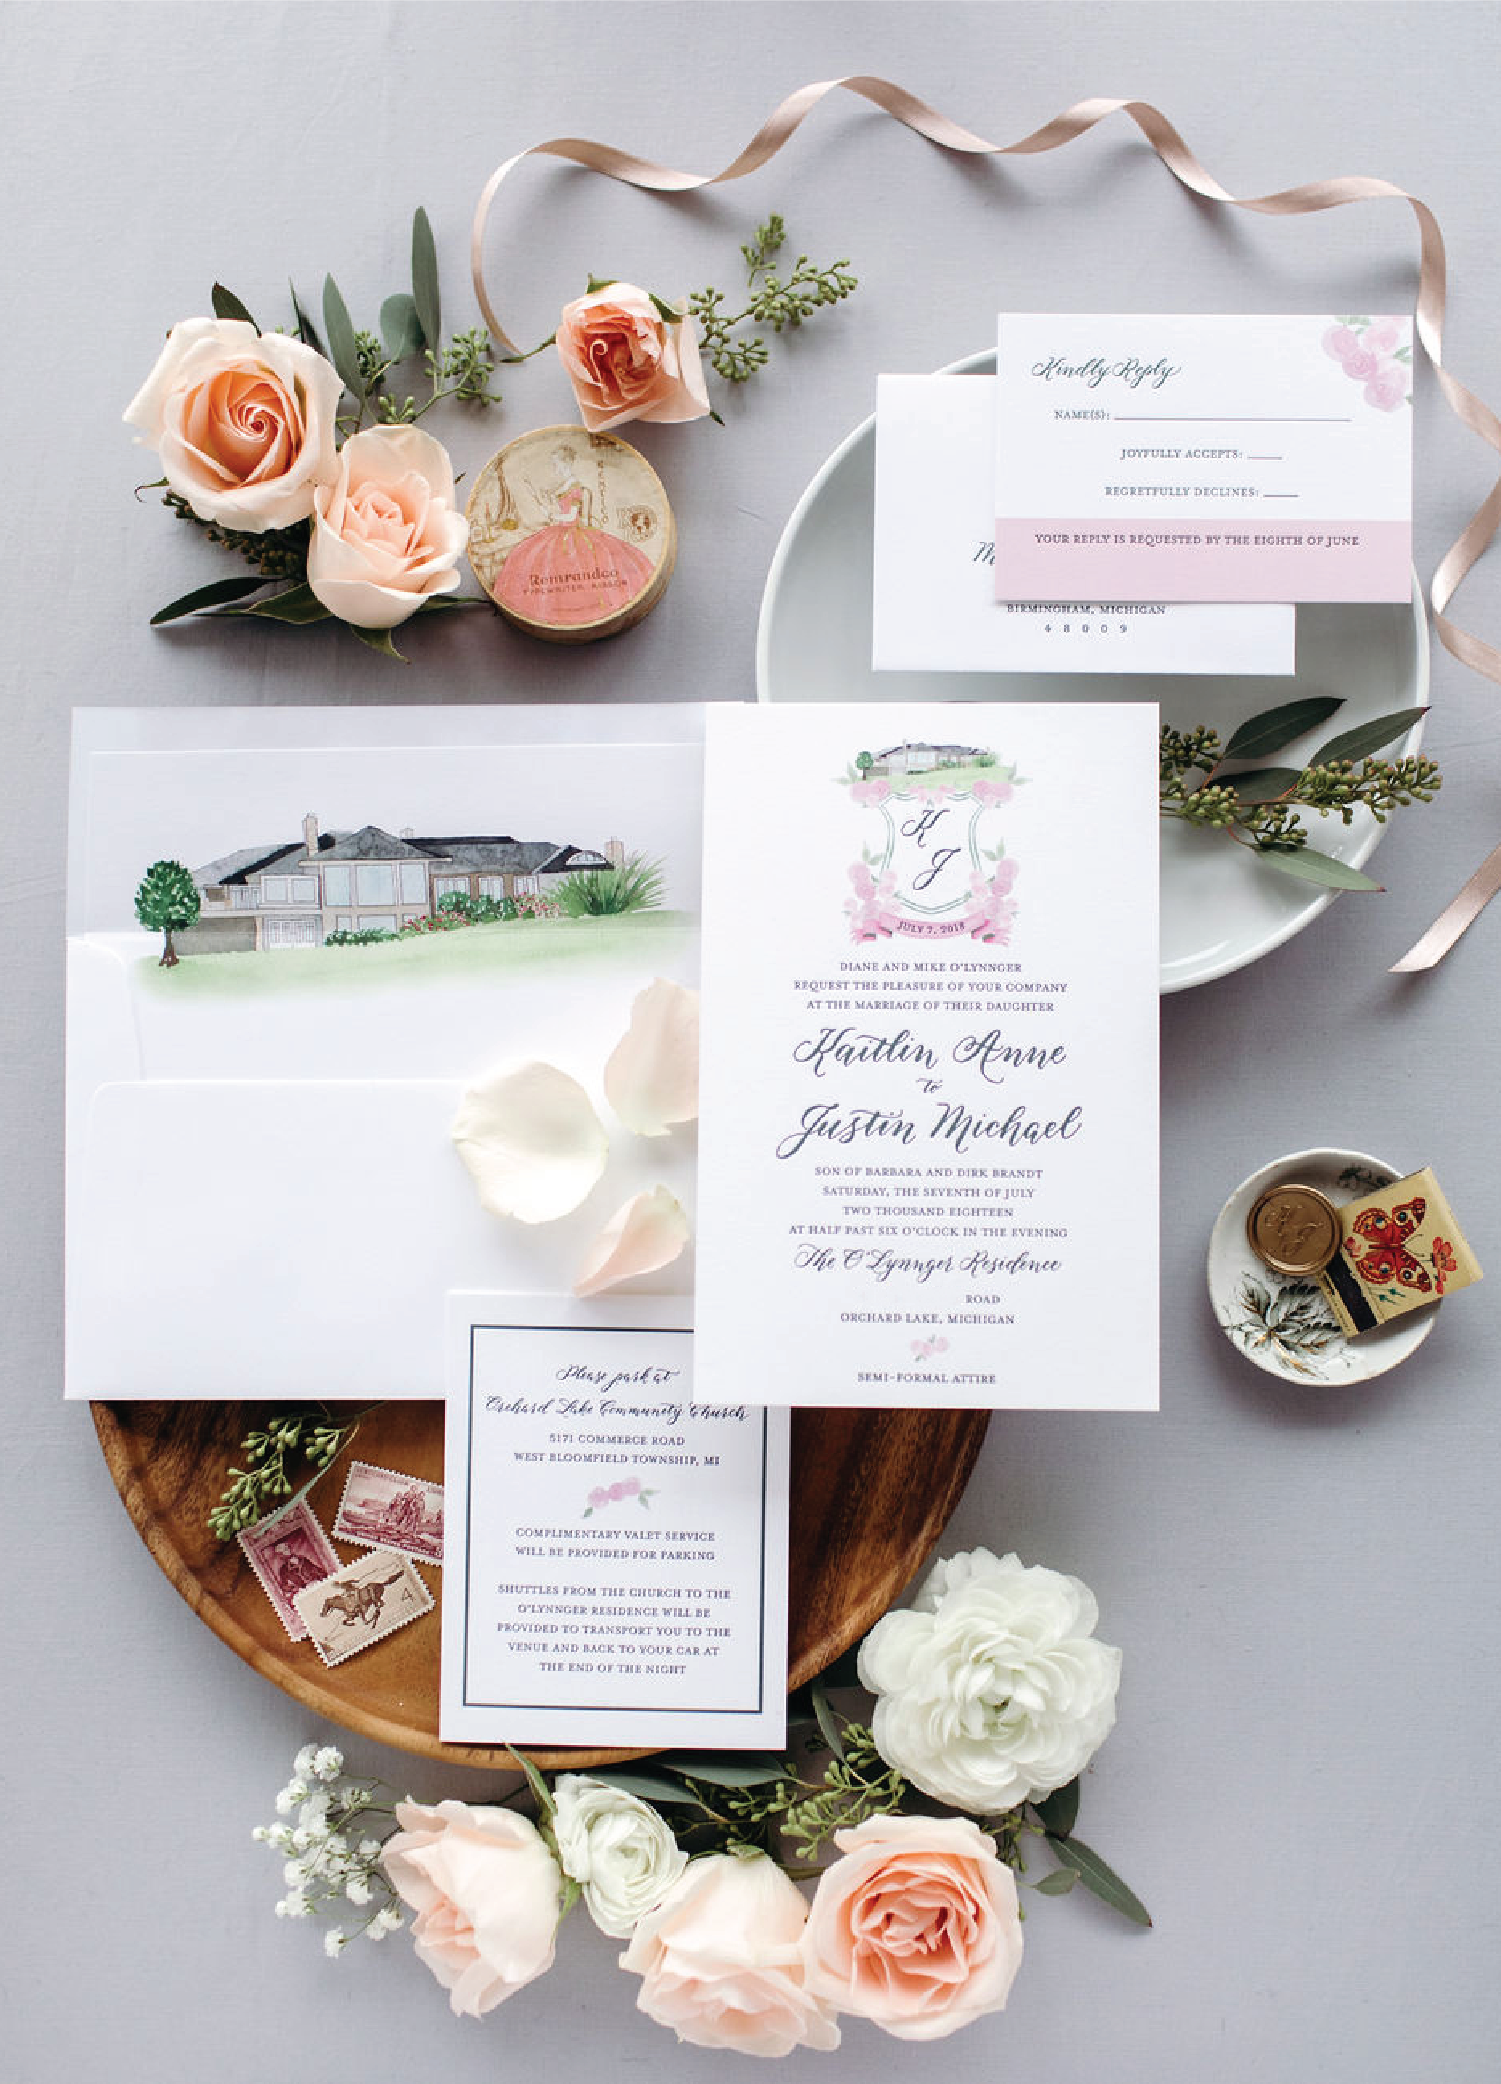 Green and pink wedding invitations with calligraphy and watercolor home illustration by Leah E. Moss Designs